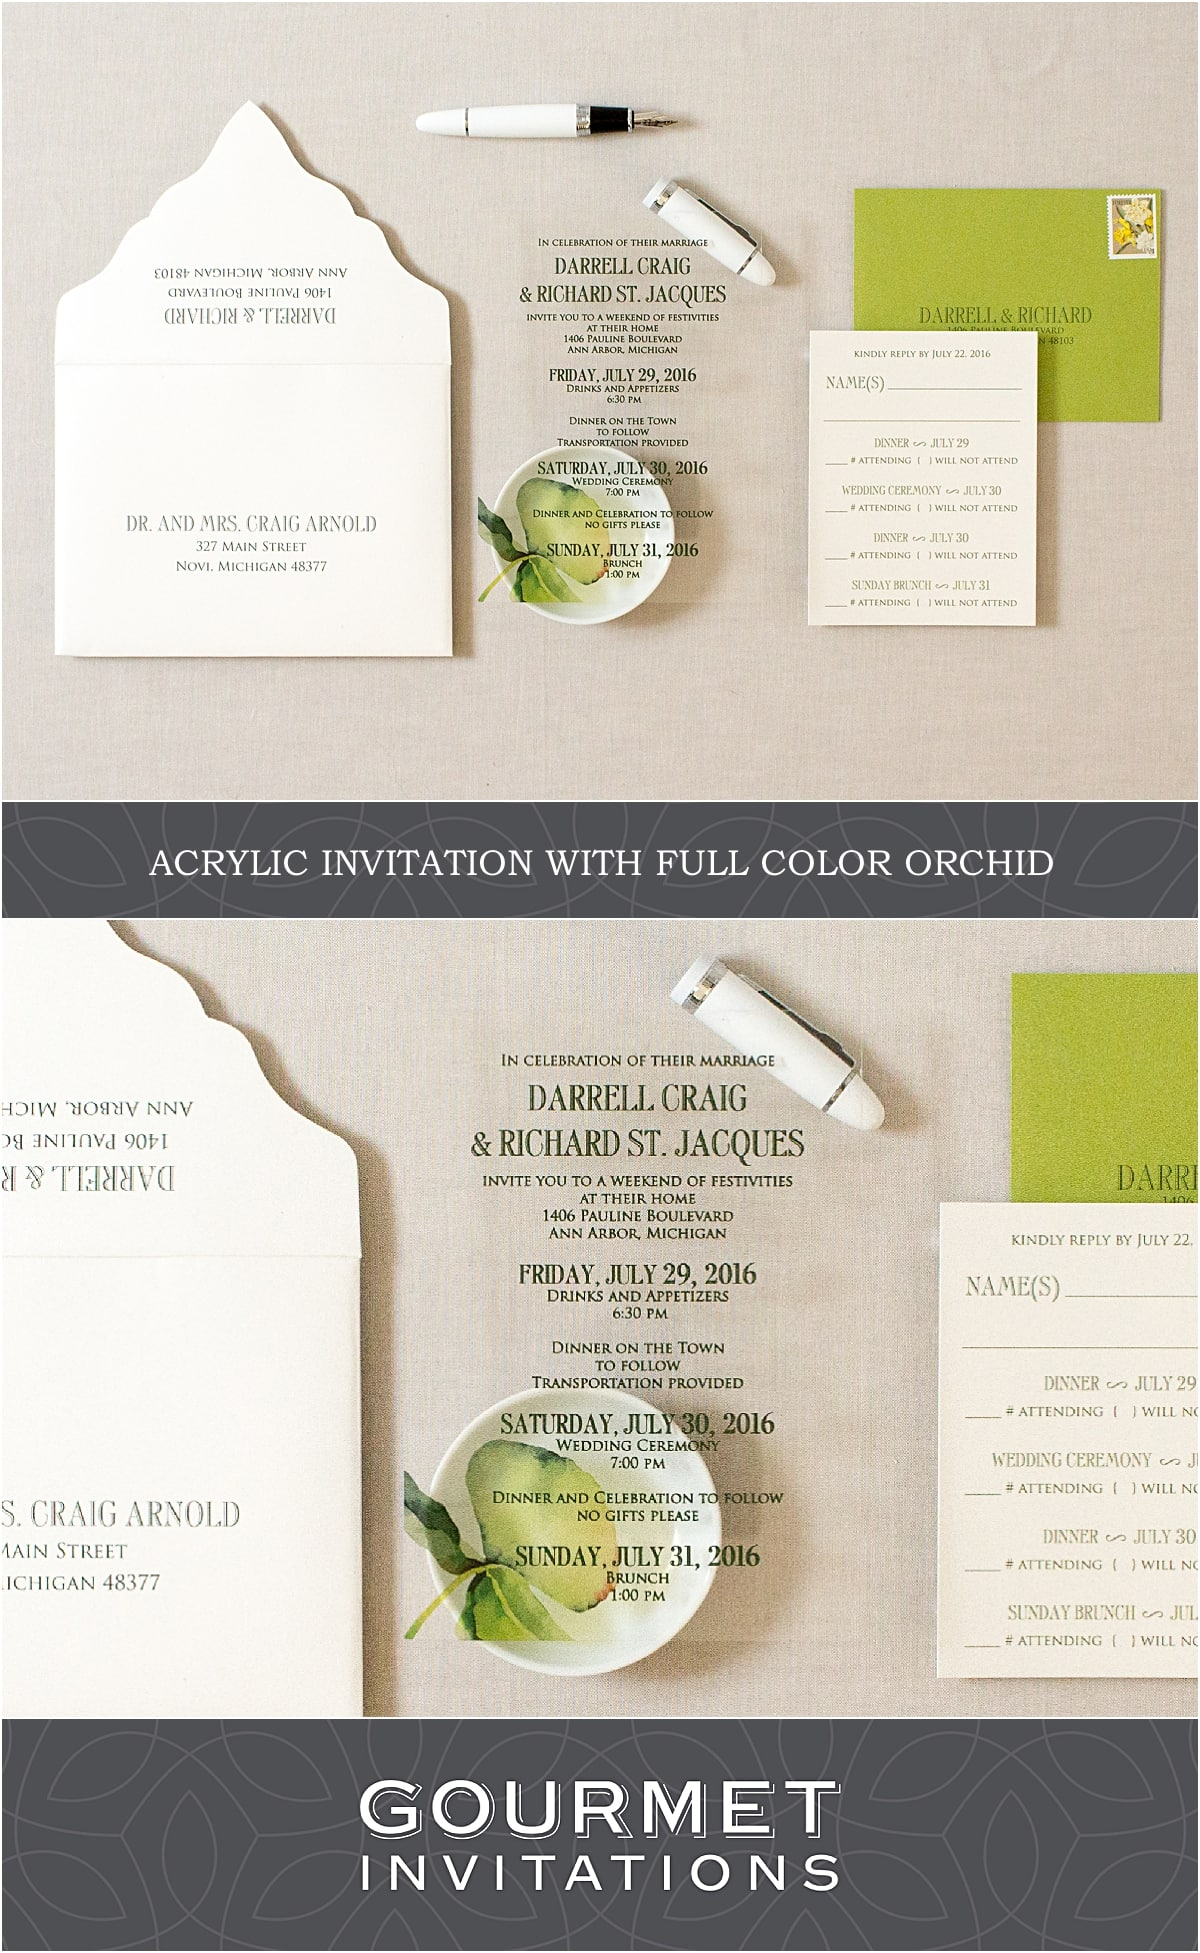 How Do You Mail Acrylic Invitations?